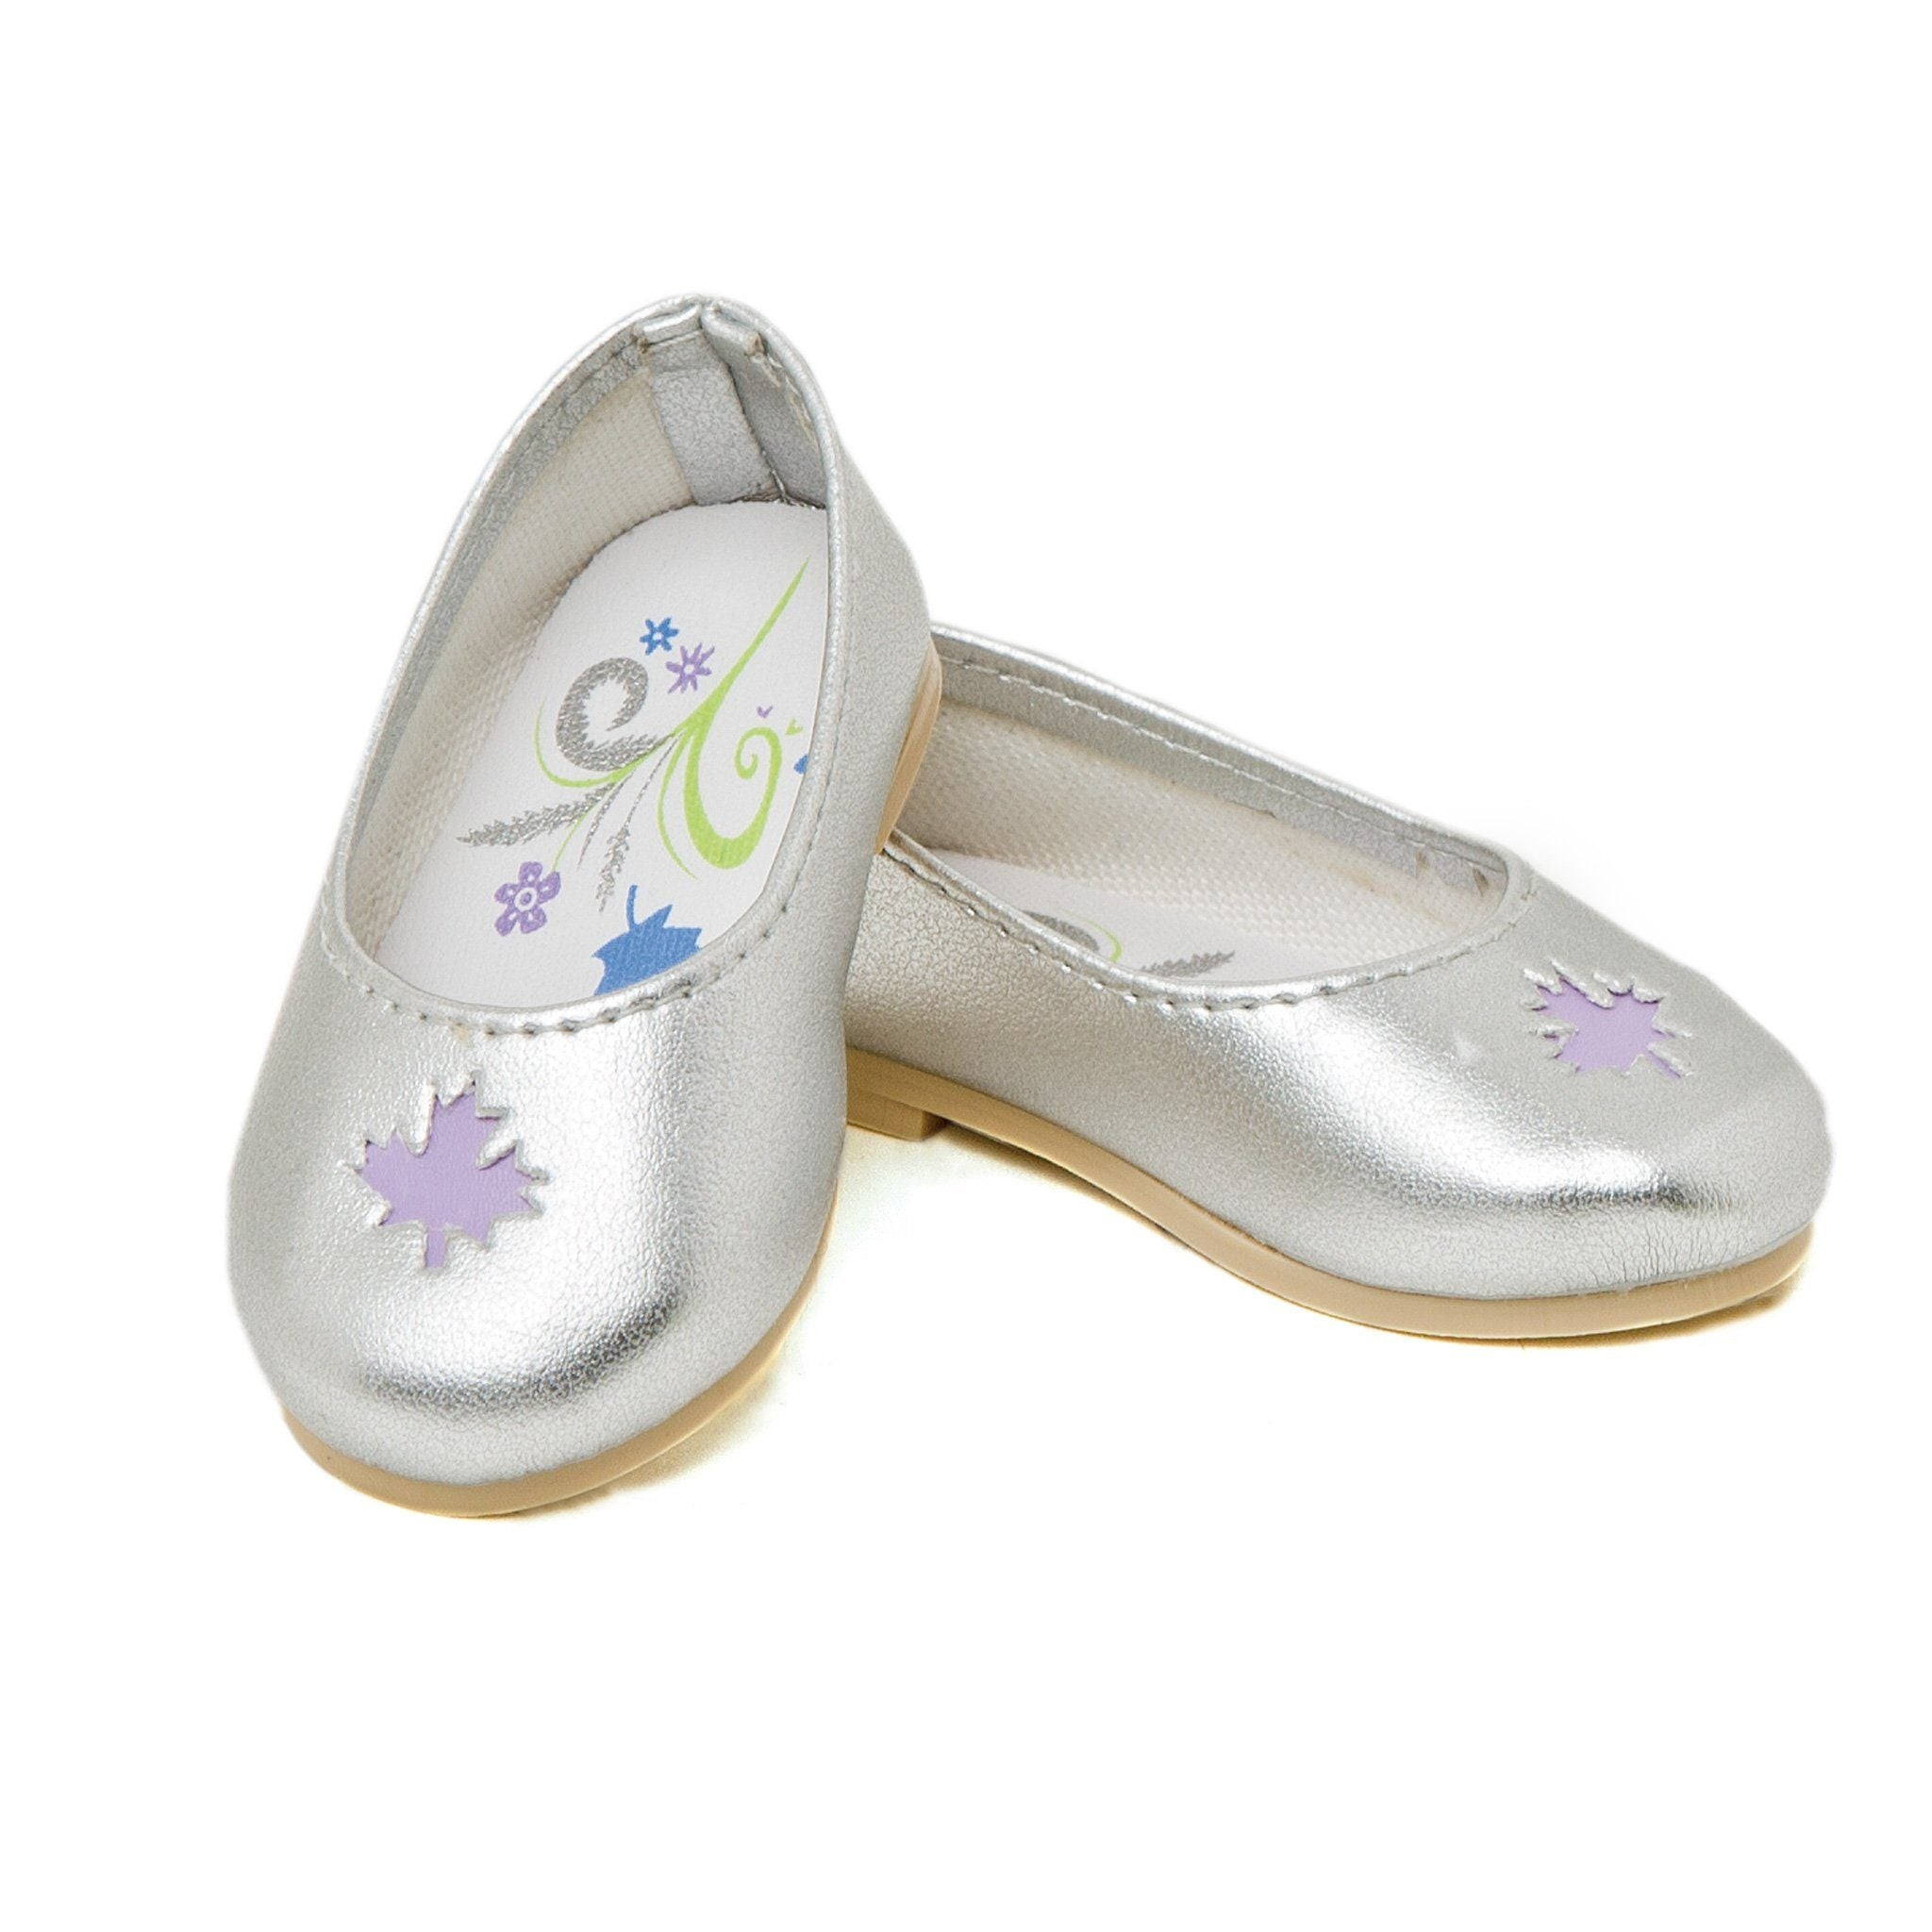 Maplelea Friend 18 inch doll starter outfit silver ballet flats with maple leaf cutout. Fits all 18 inch dolls.